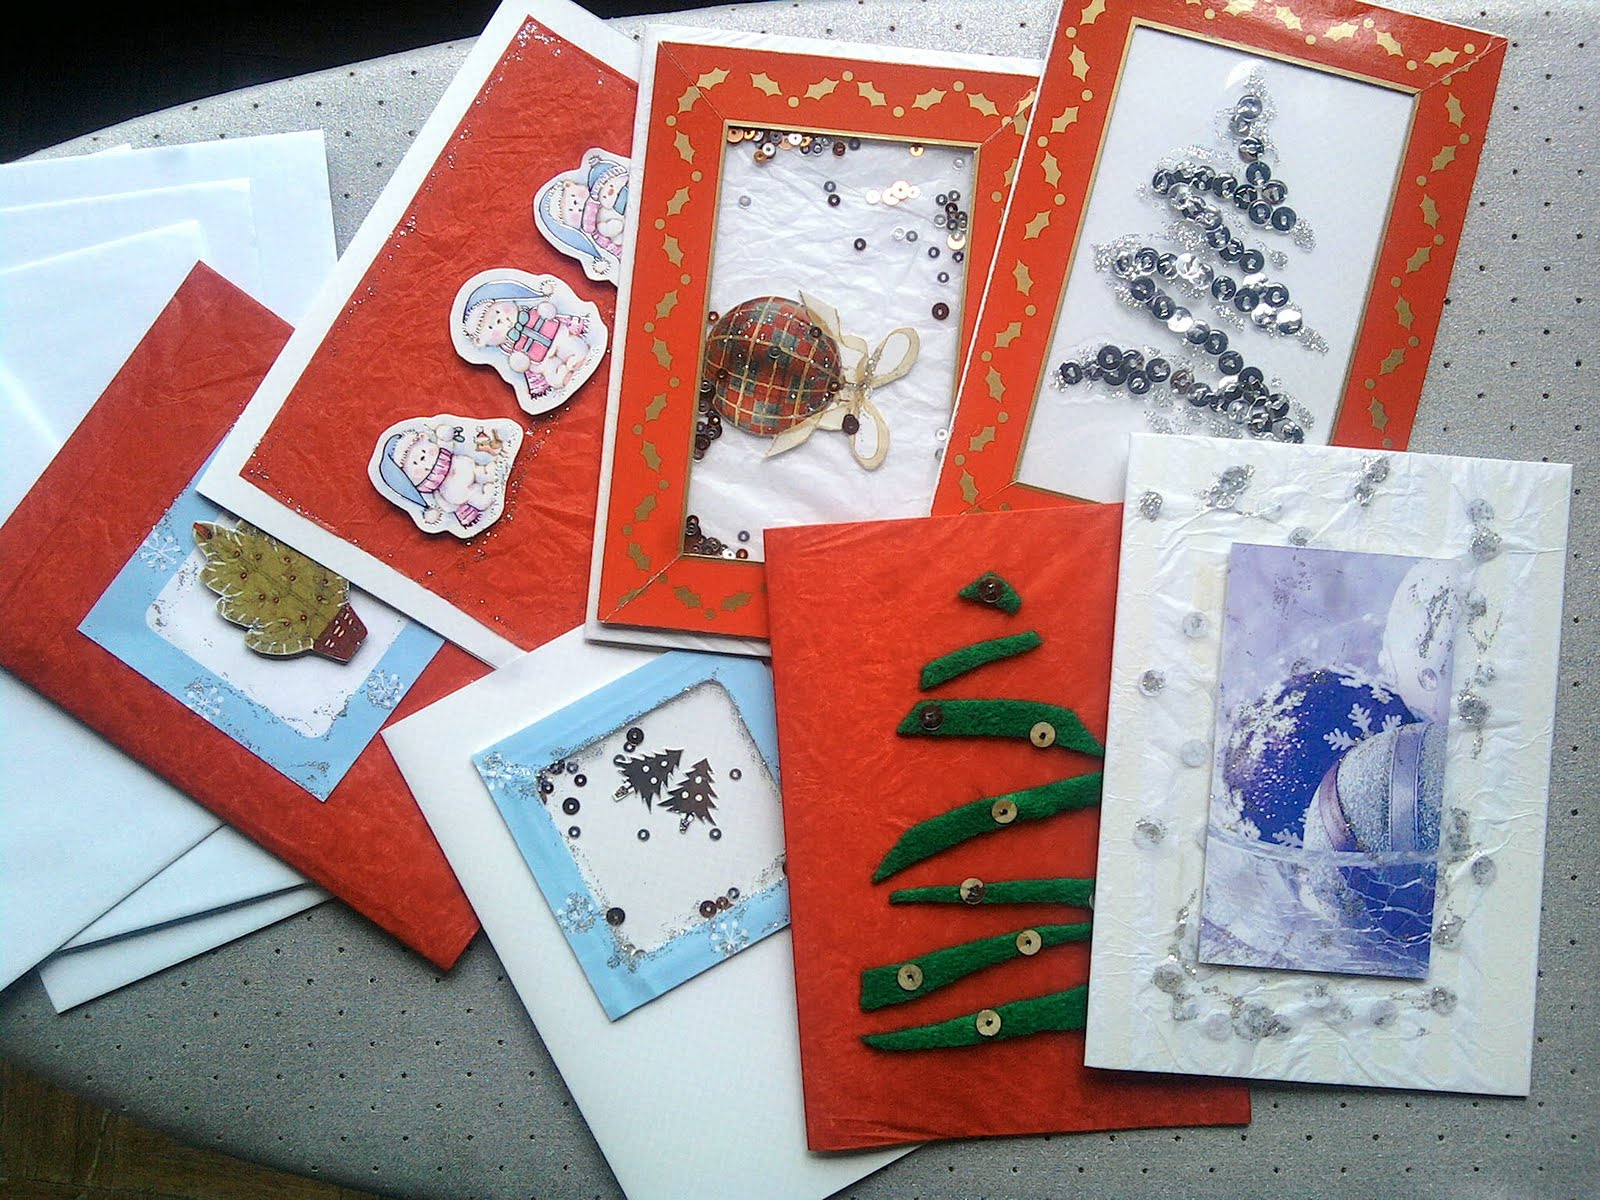 Eco Friendly Junk Makeover: Handmade Christmas Cards from Recycled